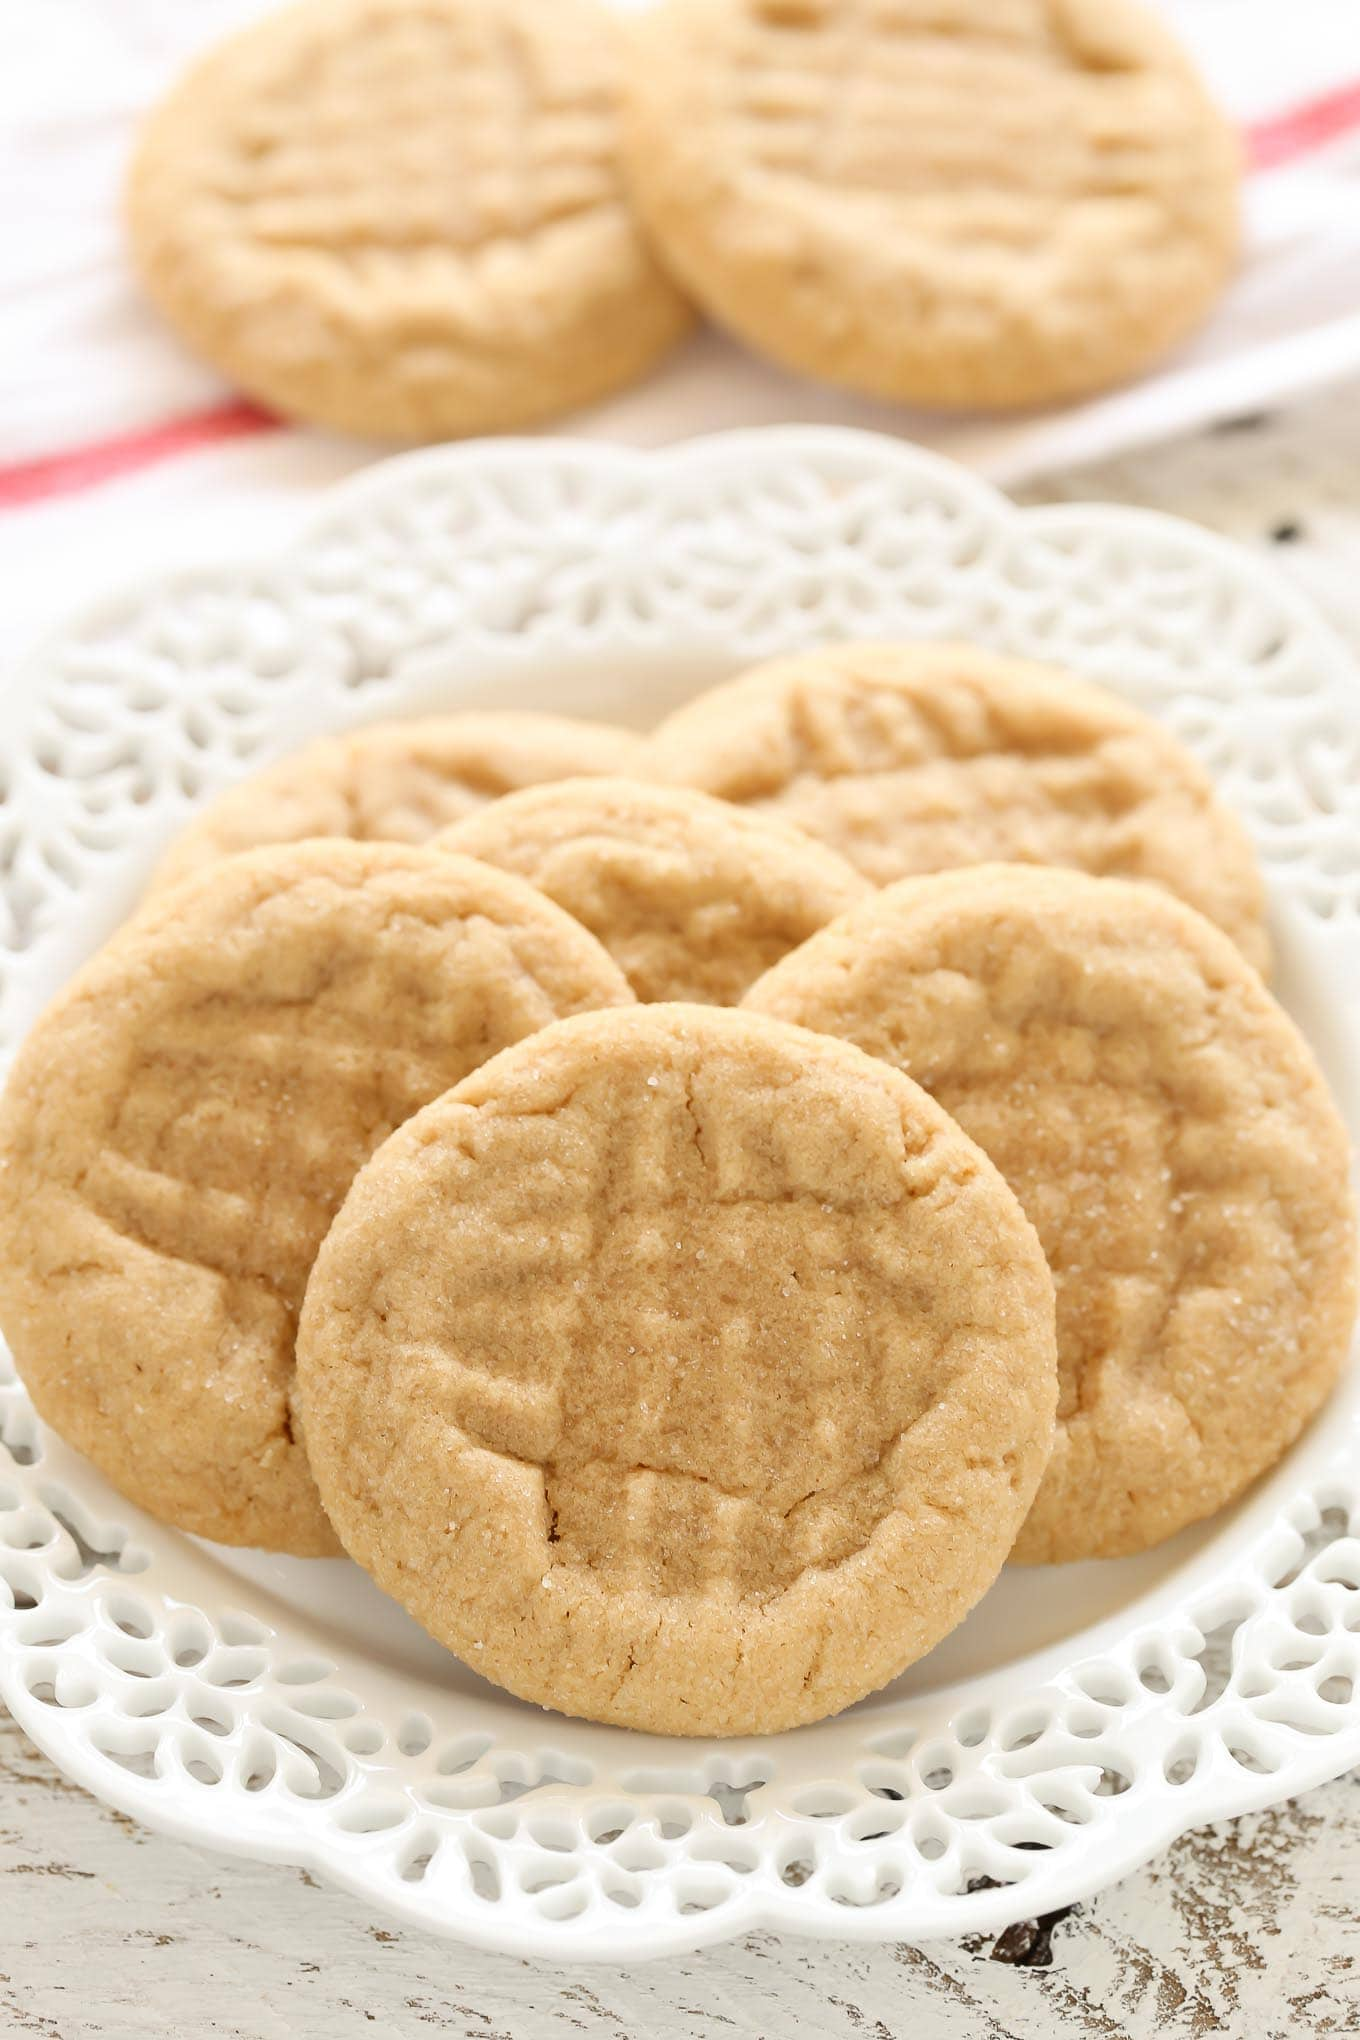 These soft peanut butter cookies are easy to make, full of peanut butter flavor, and don't require any dough chilling!